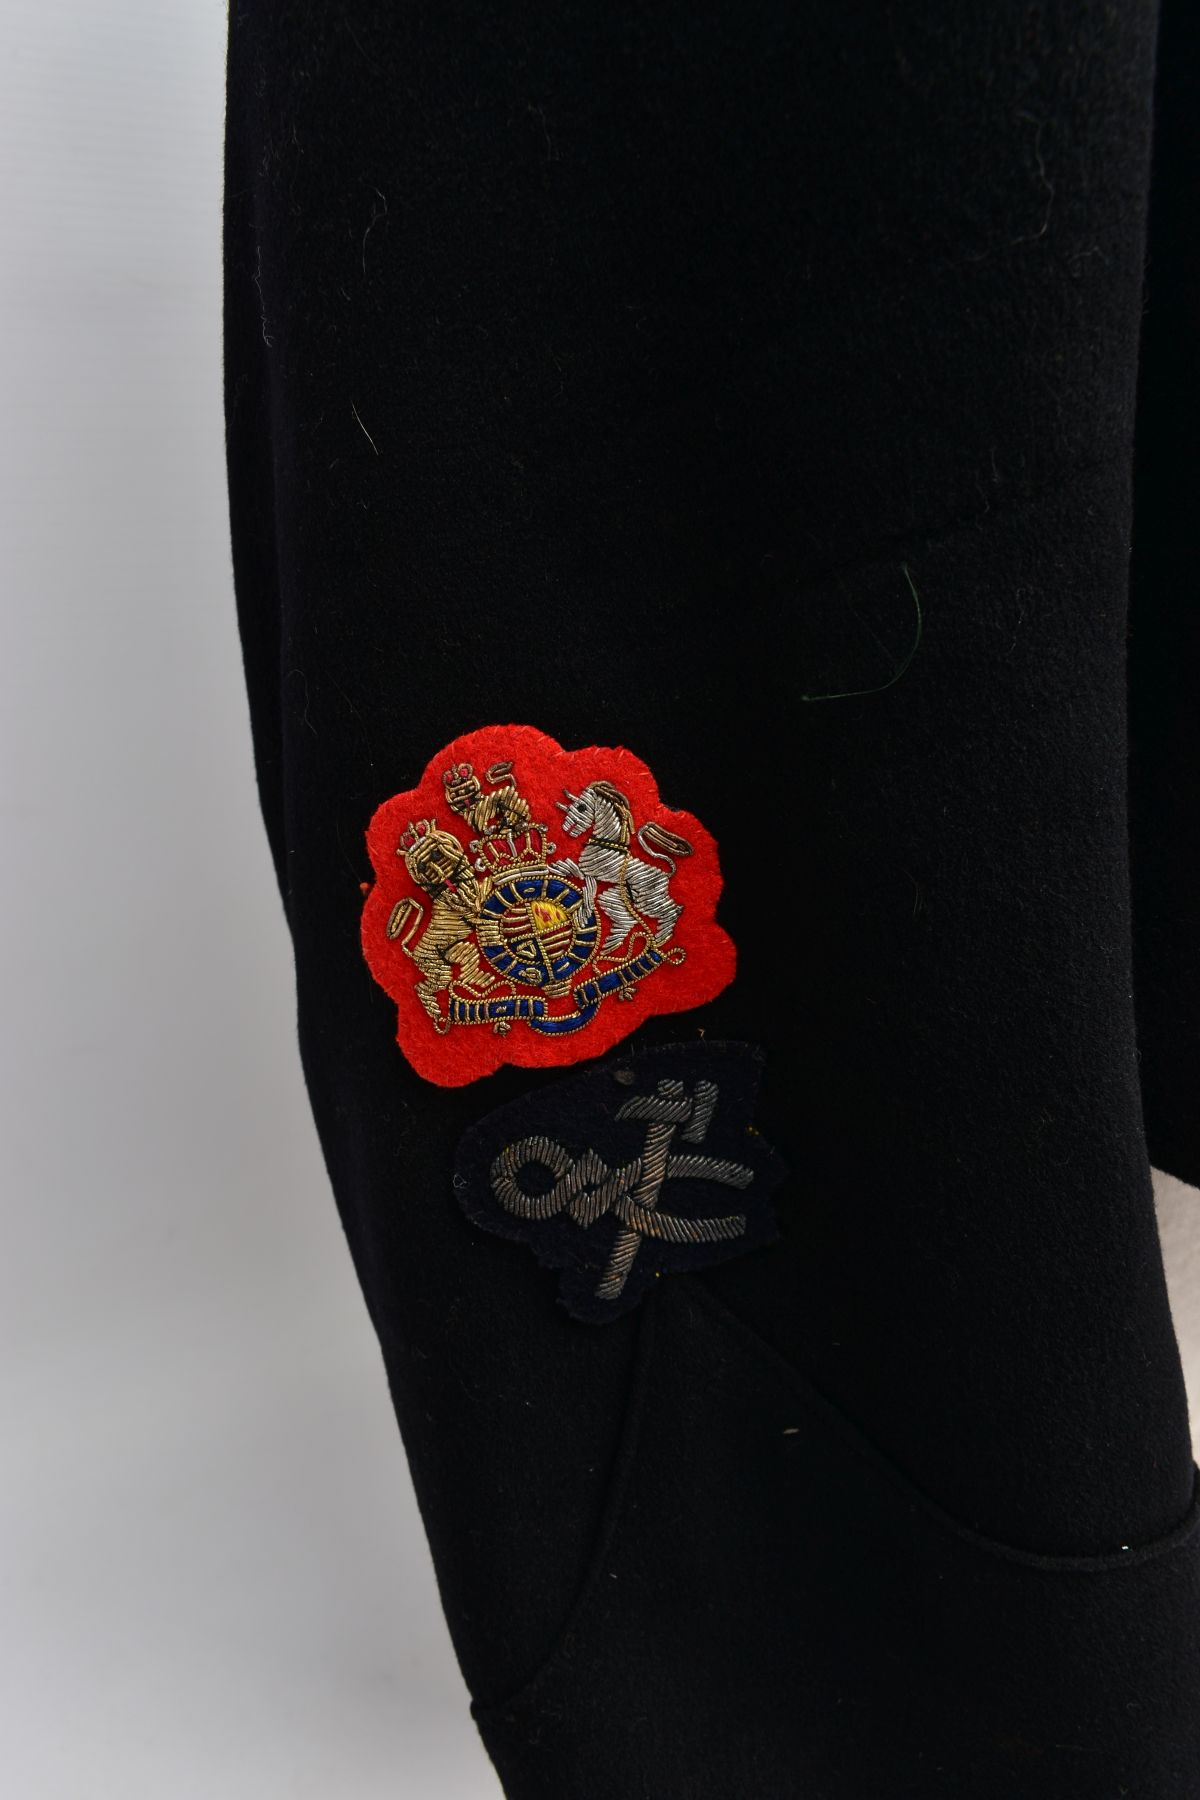 AN OFFICERS MESS DRESS EVENING WEAR SUIT, three piece jacket, waistcoat and trousers, black with red - Image 6 of 6